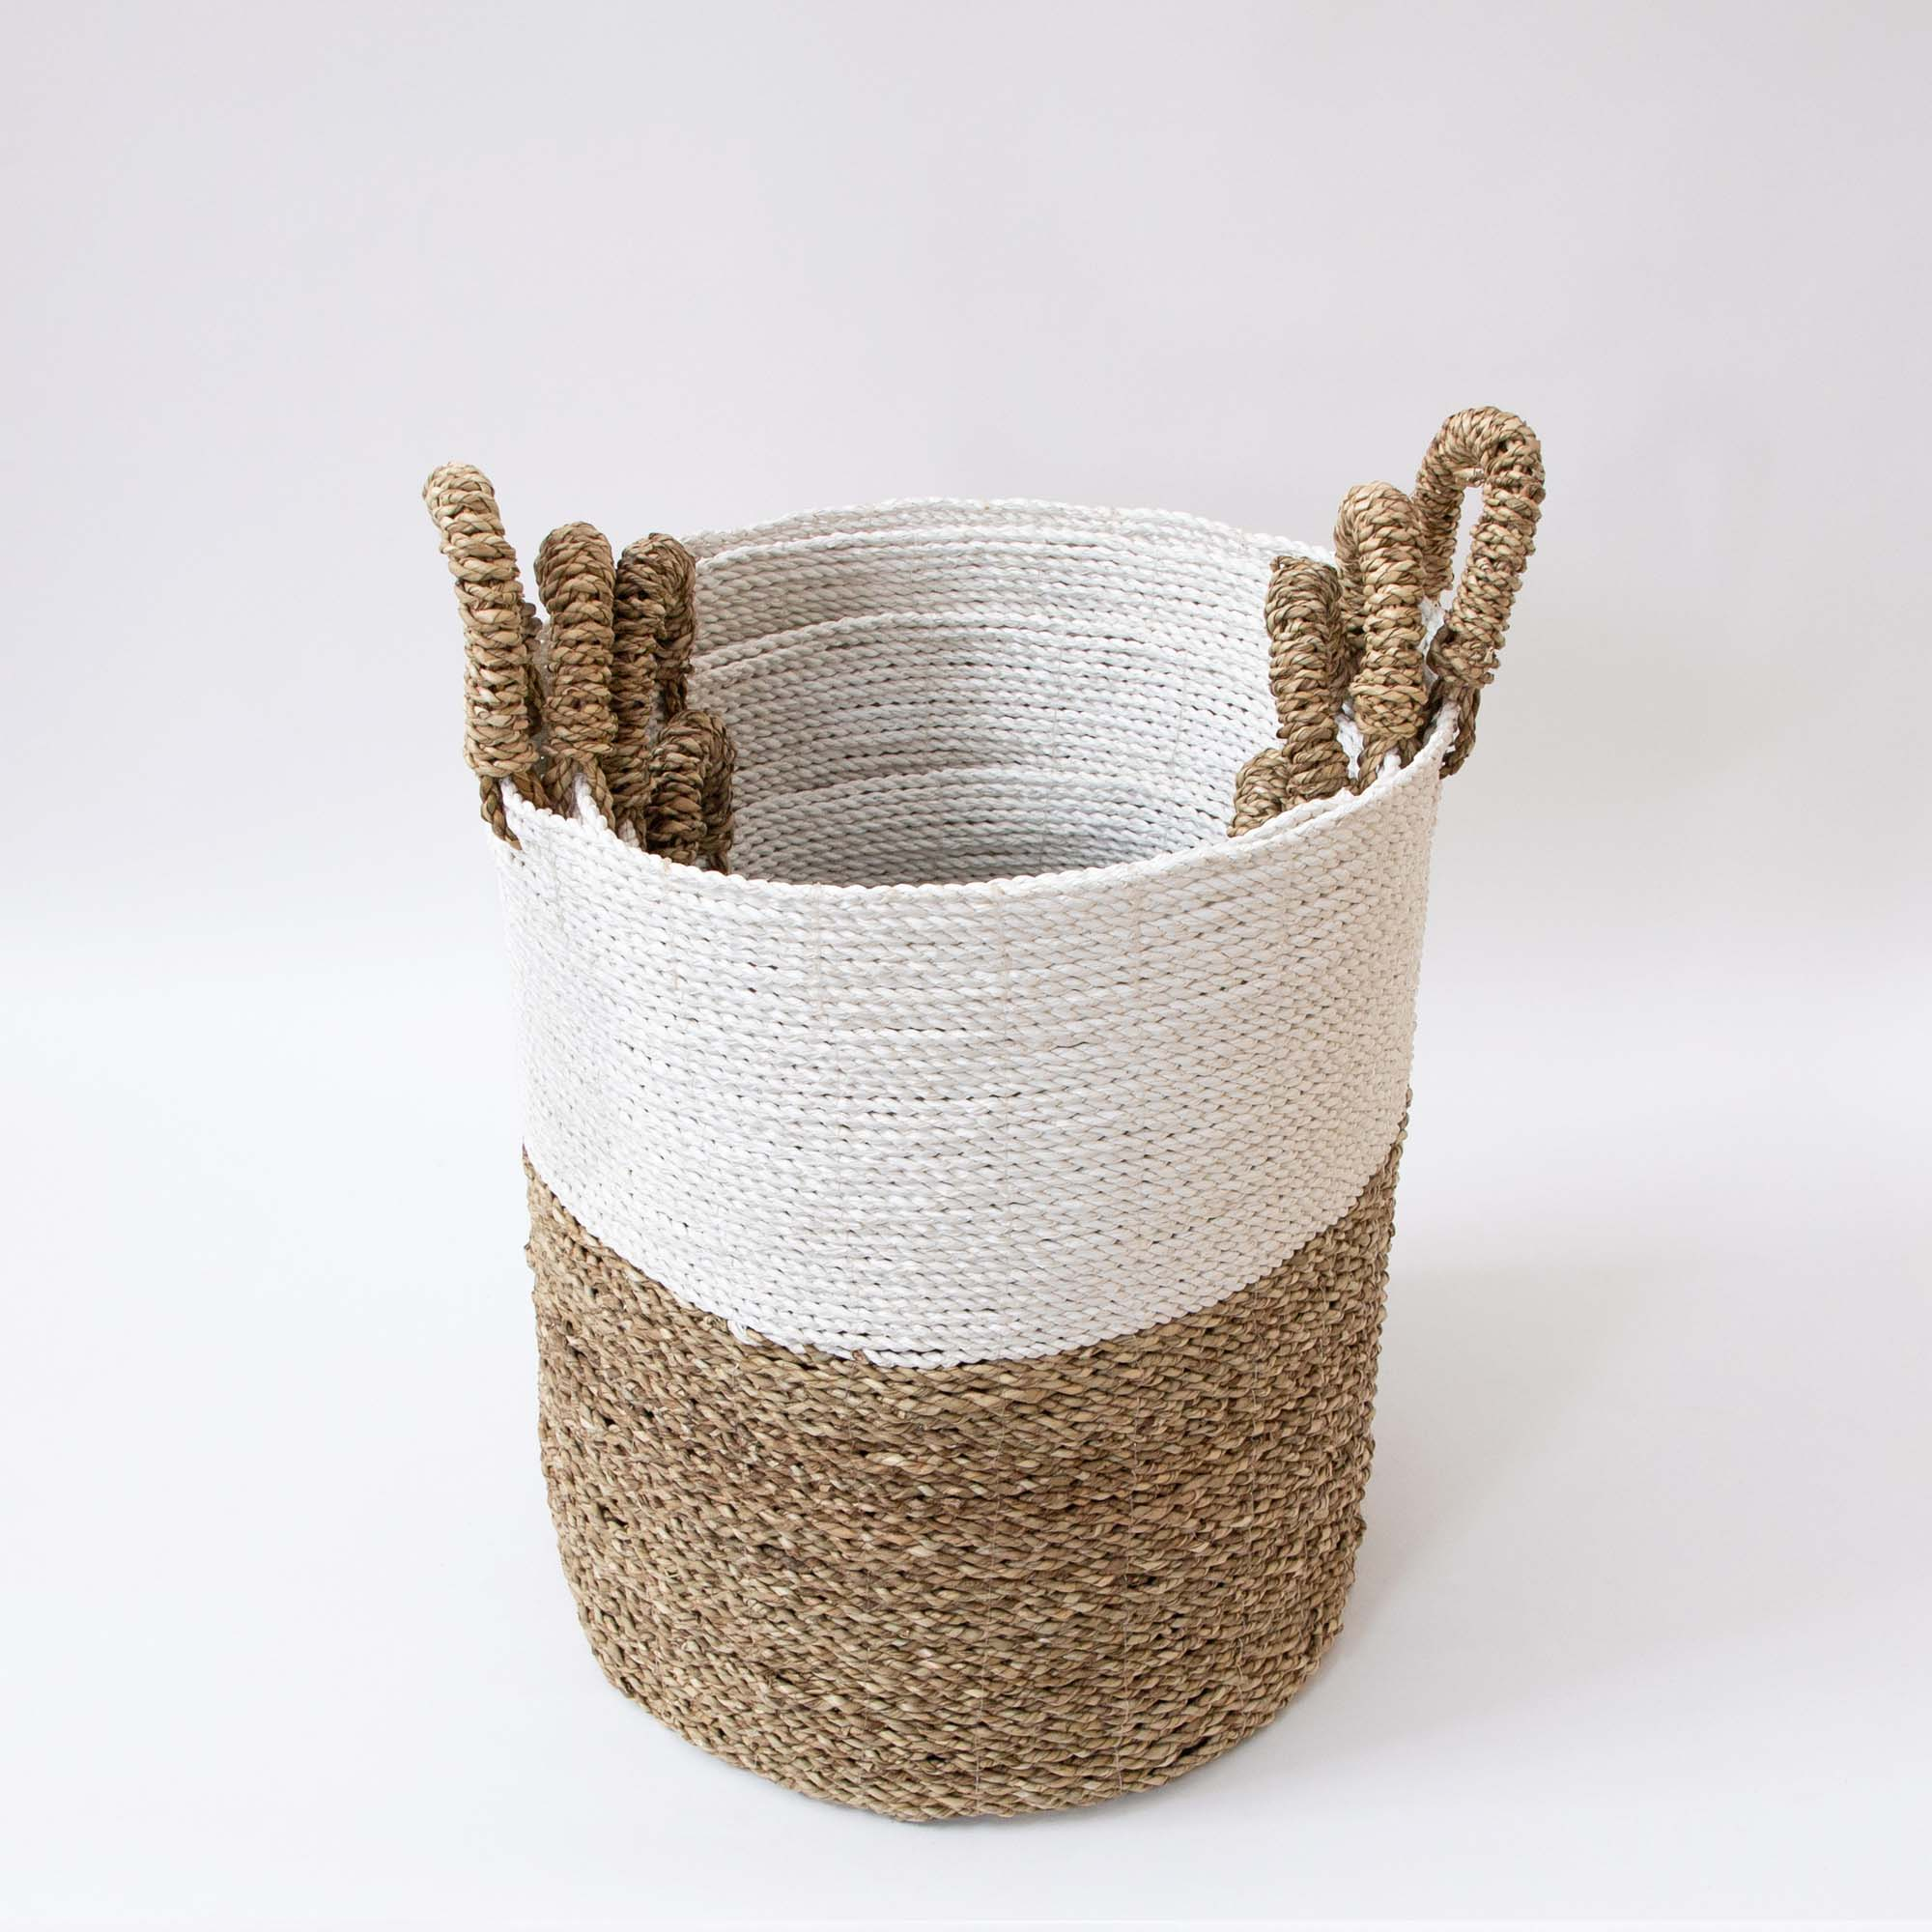 Langkawi Handwoven Basket With Side Swing Handles